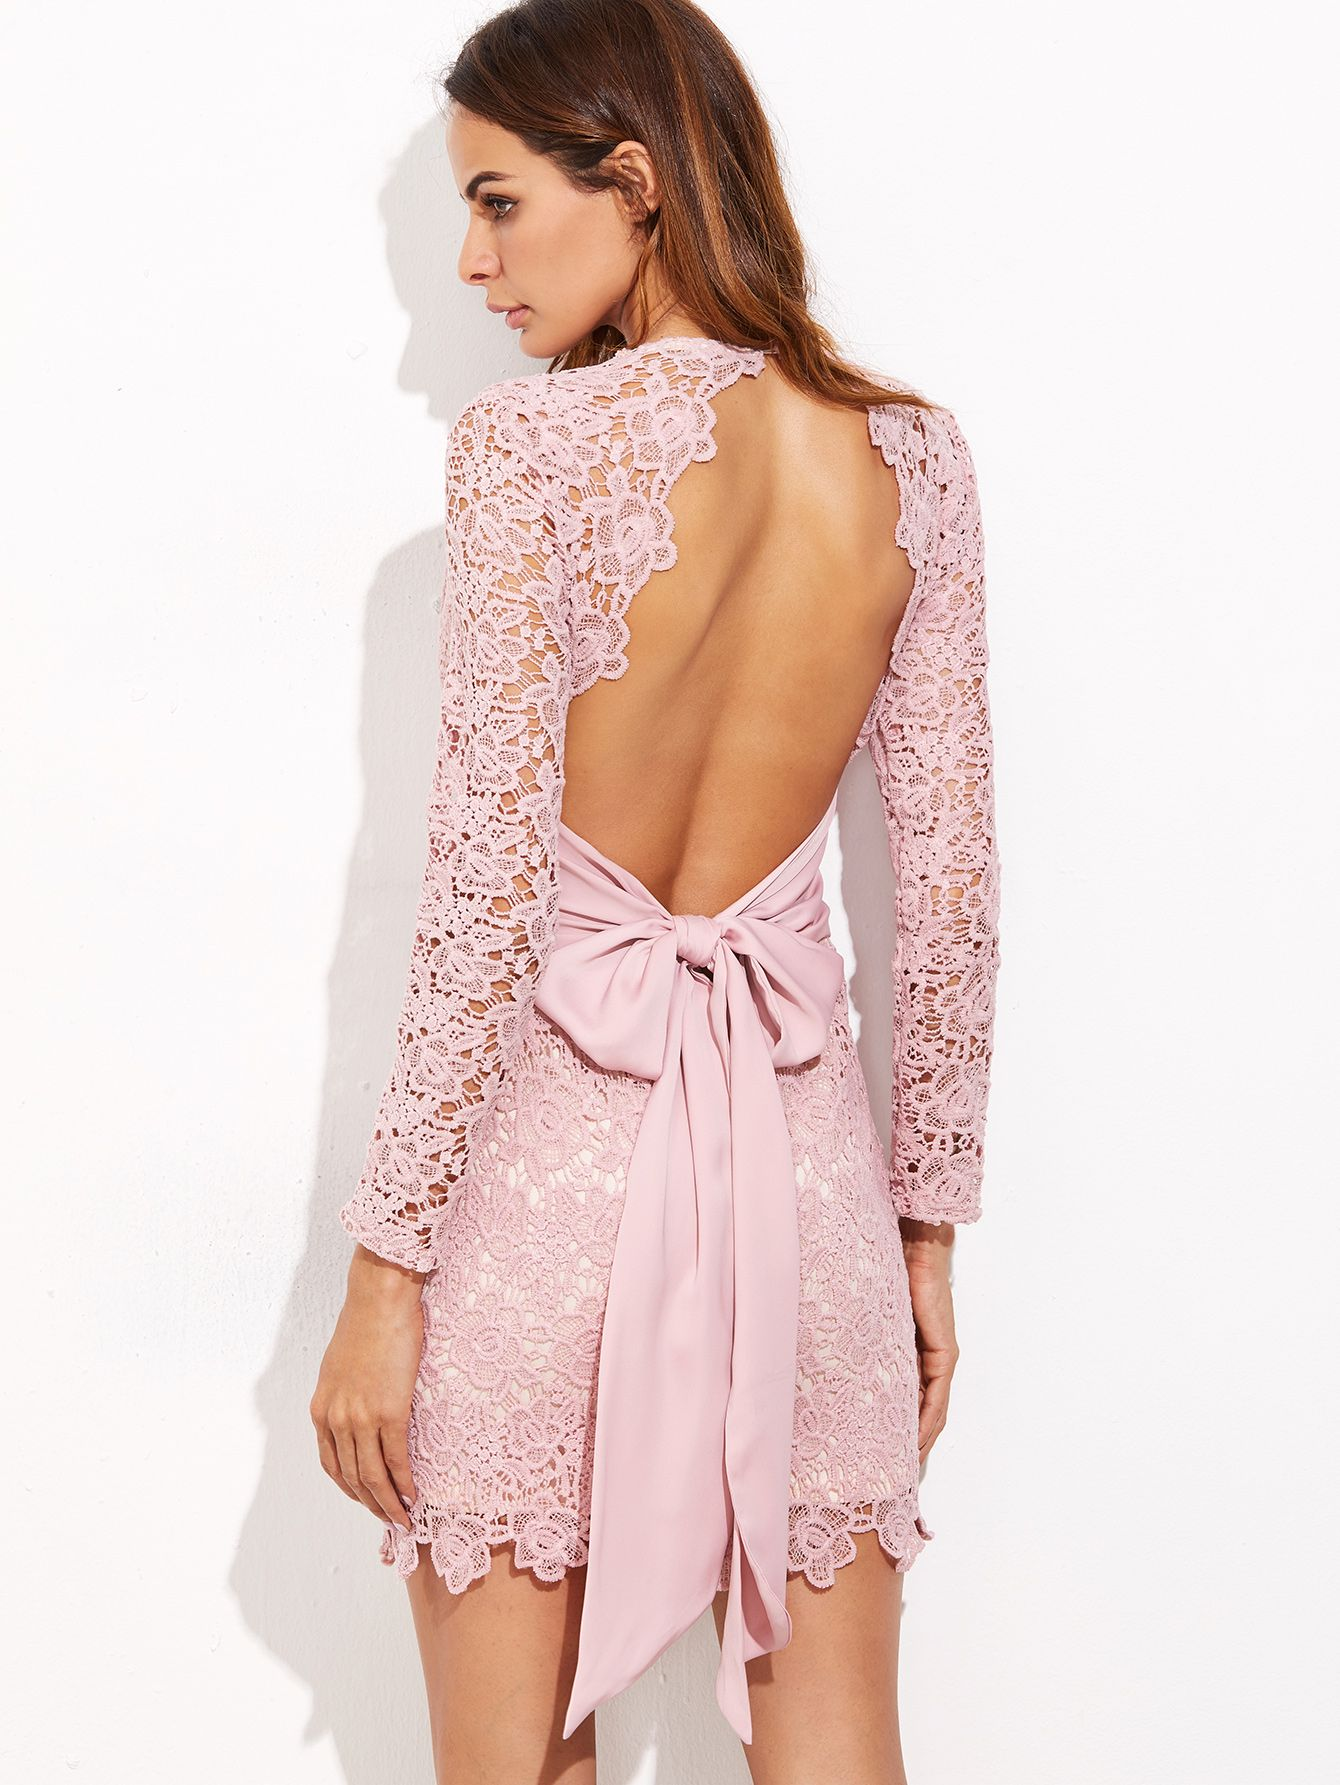 Shein Bow Tie Open Back Embroidered Lace Dress | Novios y Ropa